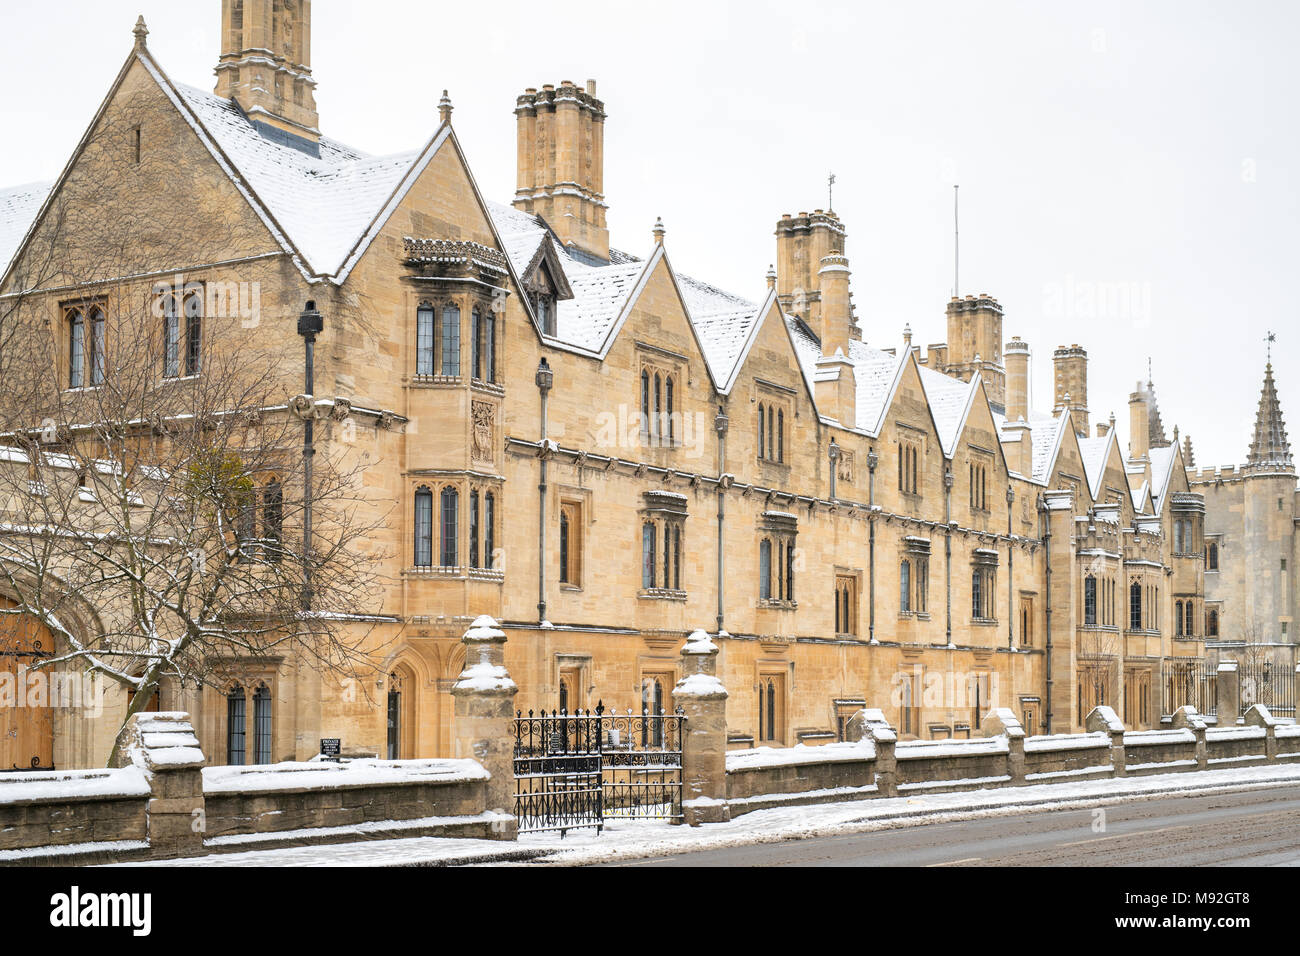 Magdalen College buildings along the high street in the early morning snow. Oxford, Oxfordshire, England - Stock Image